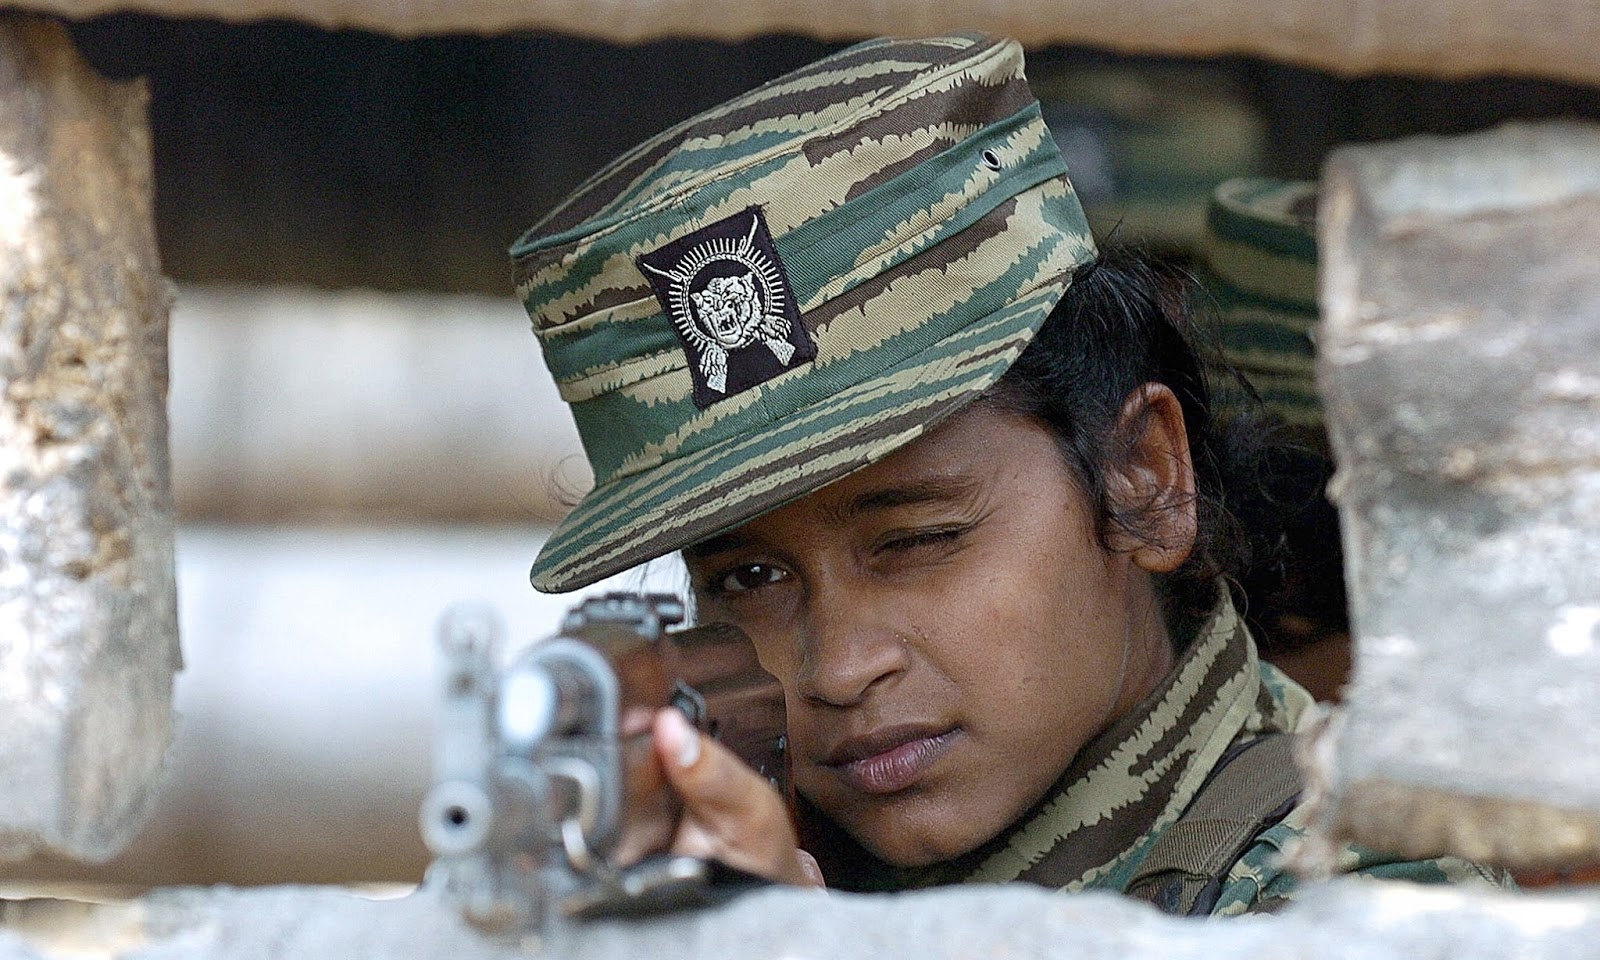 the liberation tigers of tamil eelam Liberation tigers of tamil eelam's (ltte) international organization and operations - a preliminary analysis peter chalk winter 1999 unclassified.